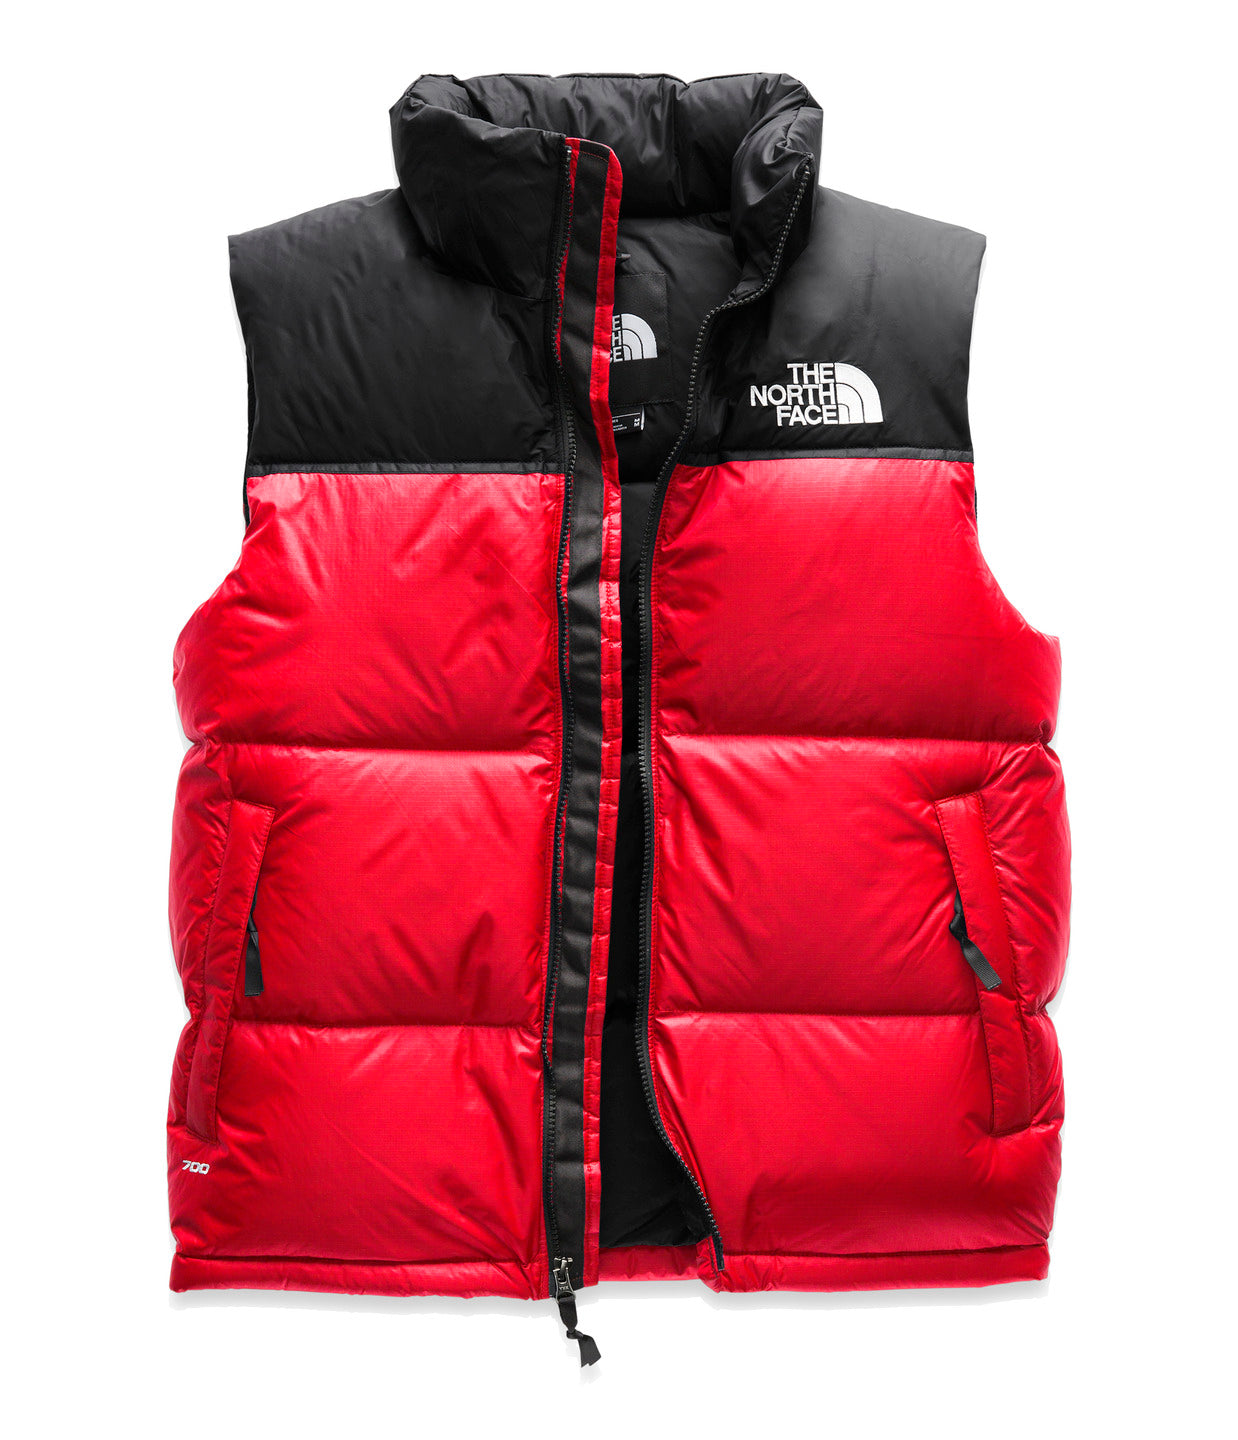 THE NORTH FACE M'S OUTDOOR JKT RED S 1996 RETRO NUPSTE VEST